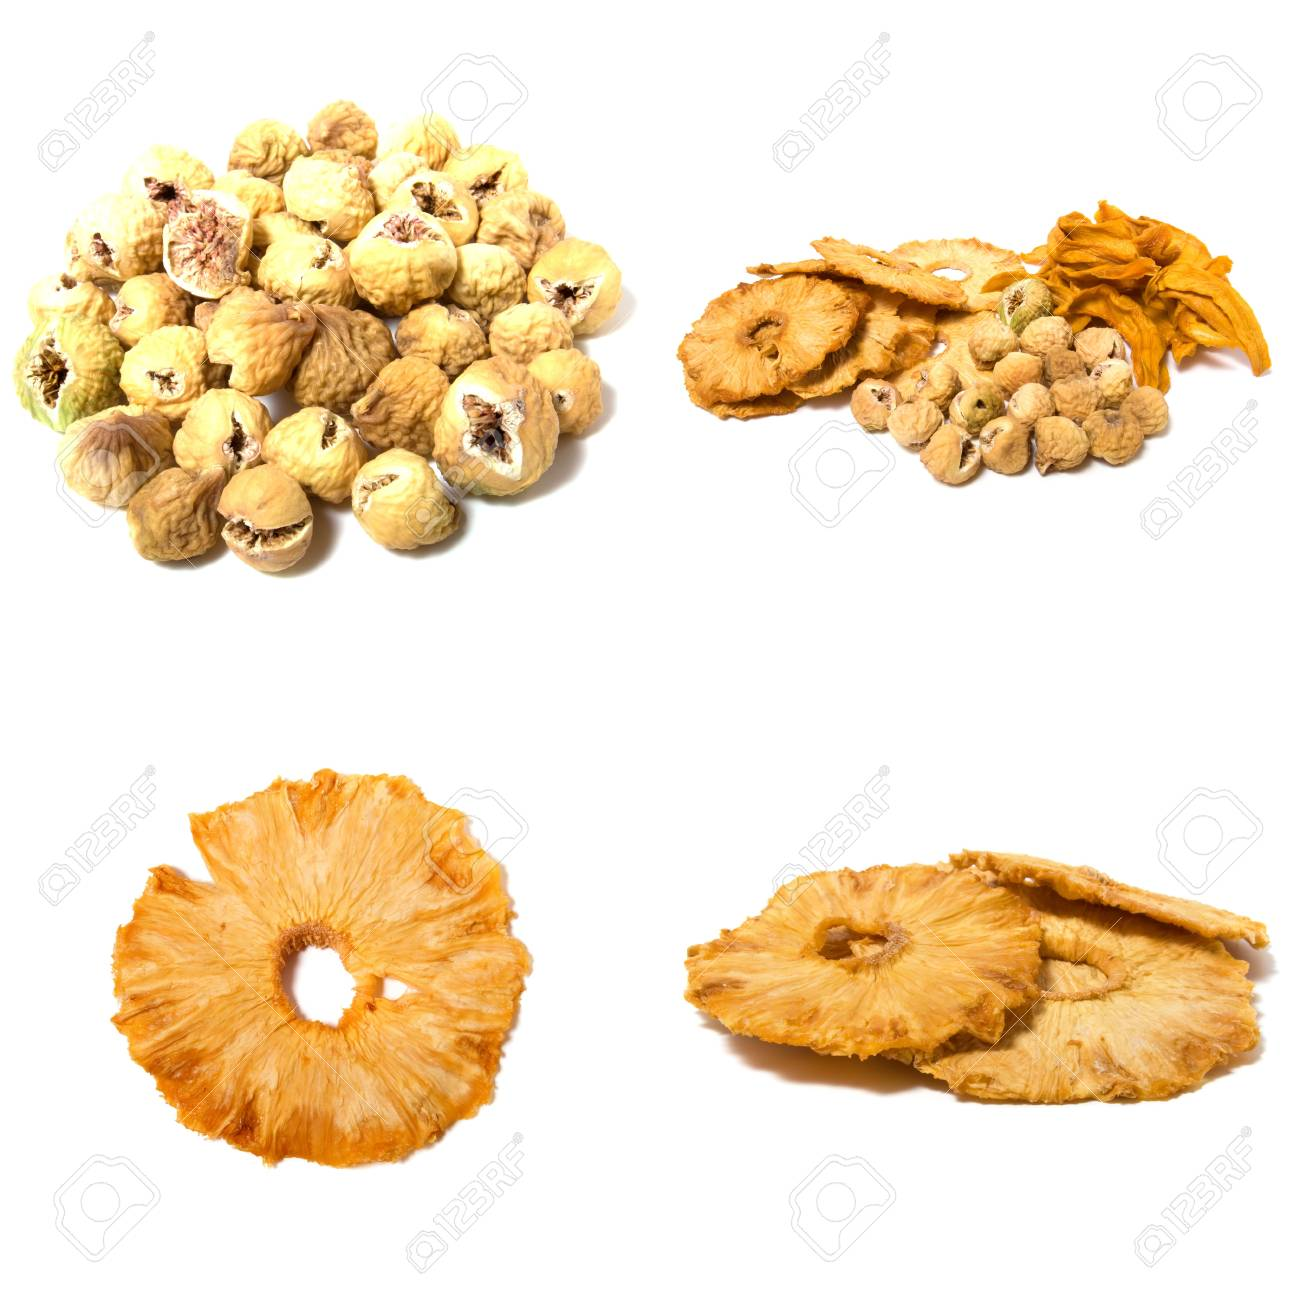 dried fruits assortment isolated on white background Stock Photo - 5982657